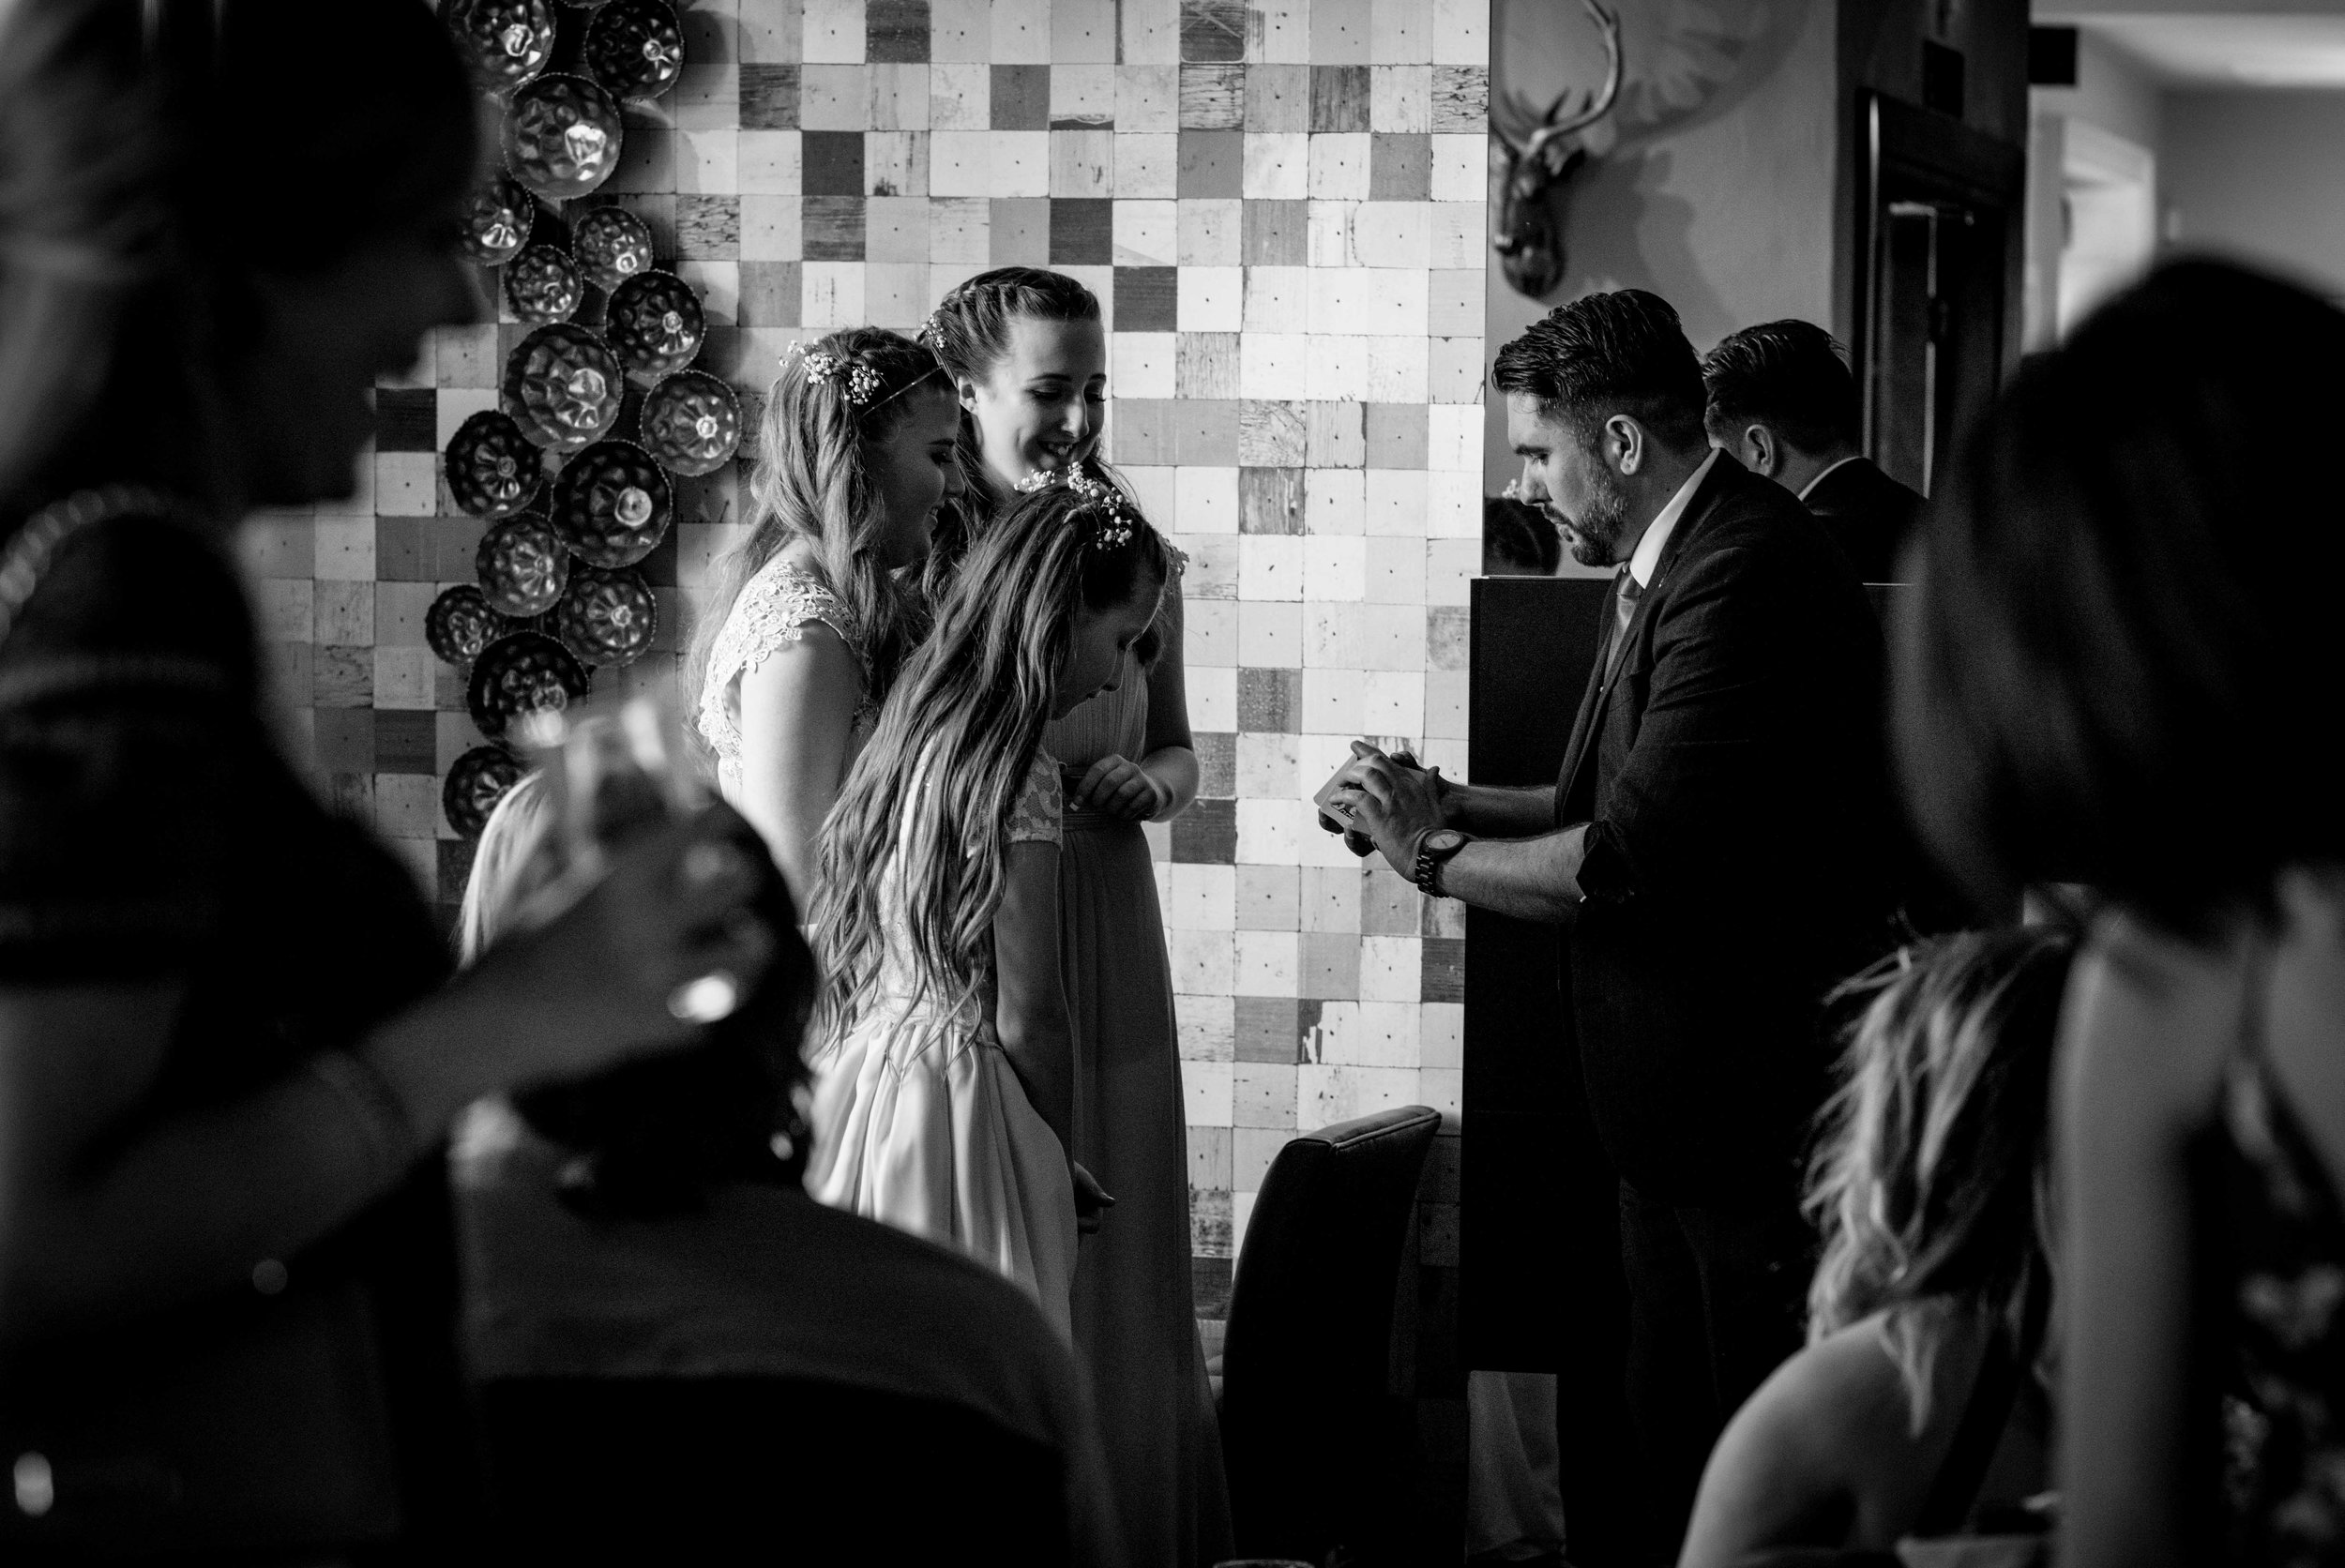 The young wedding guests watch with amazement the magician doing card tricks